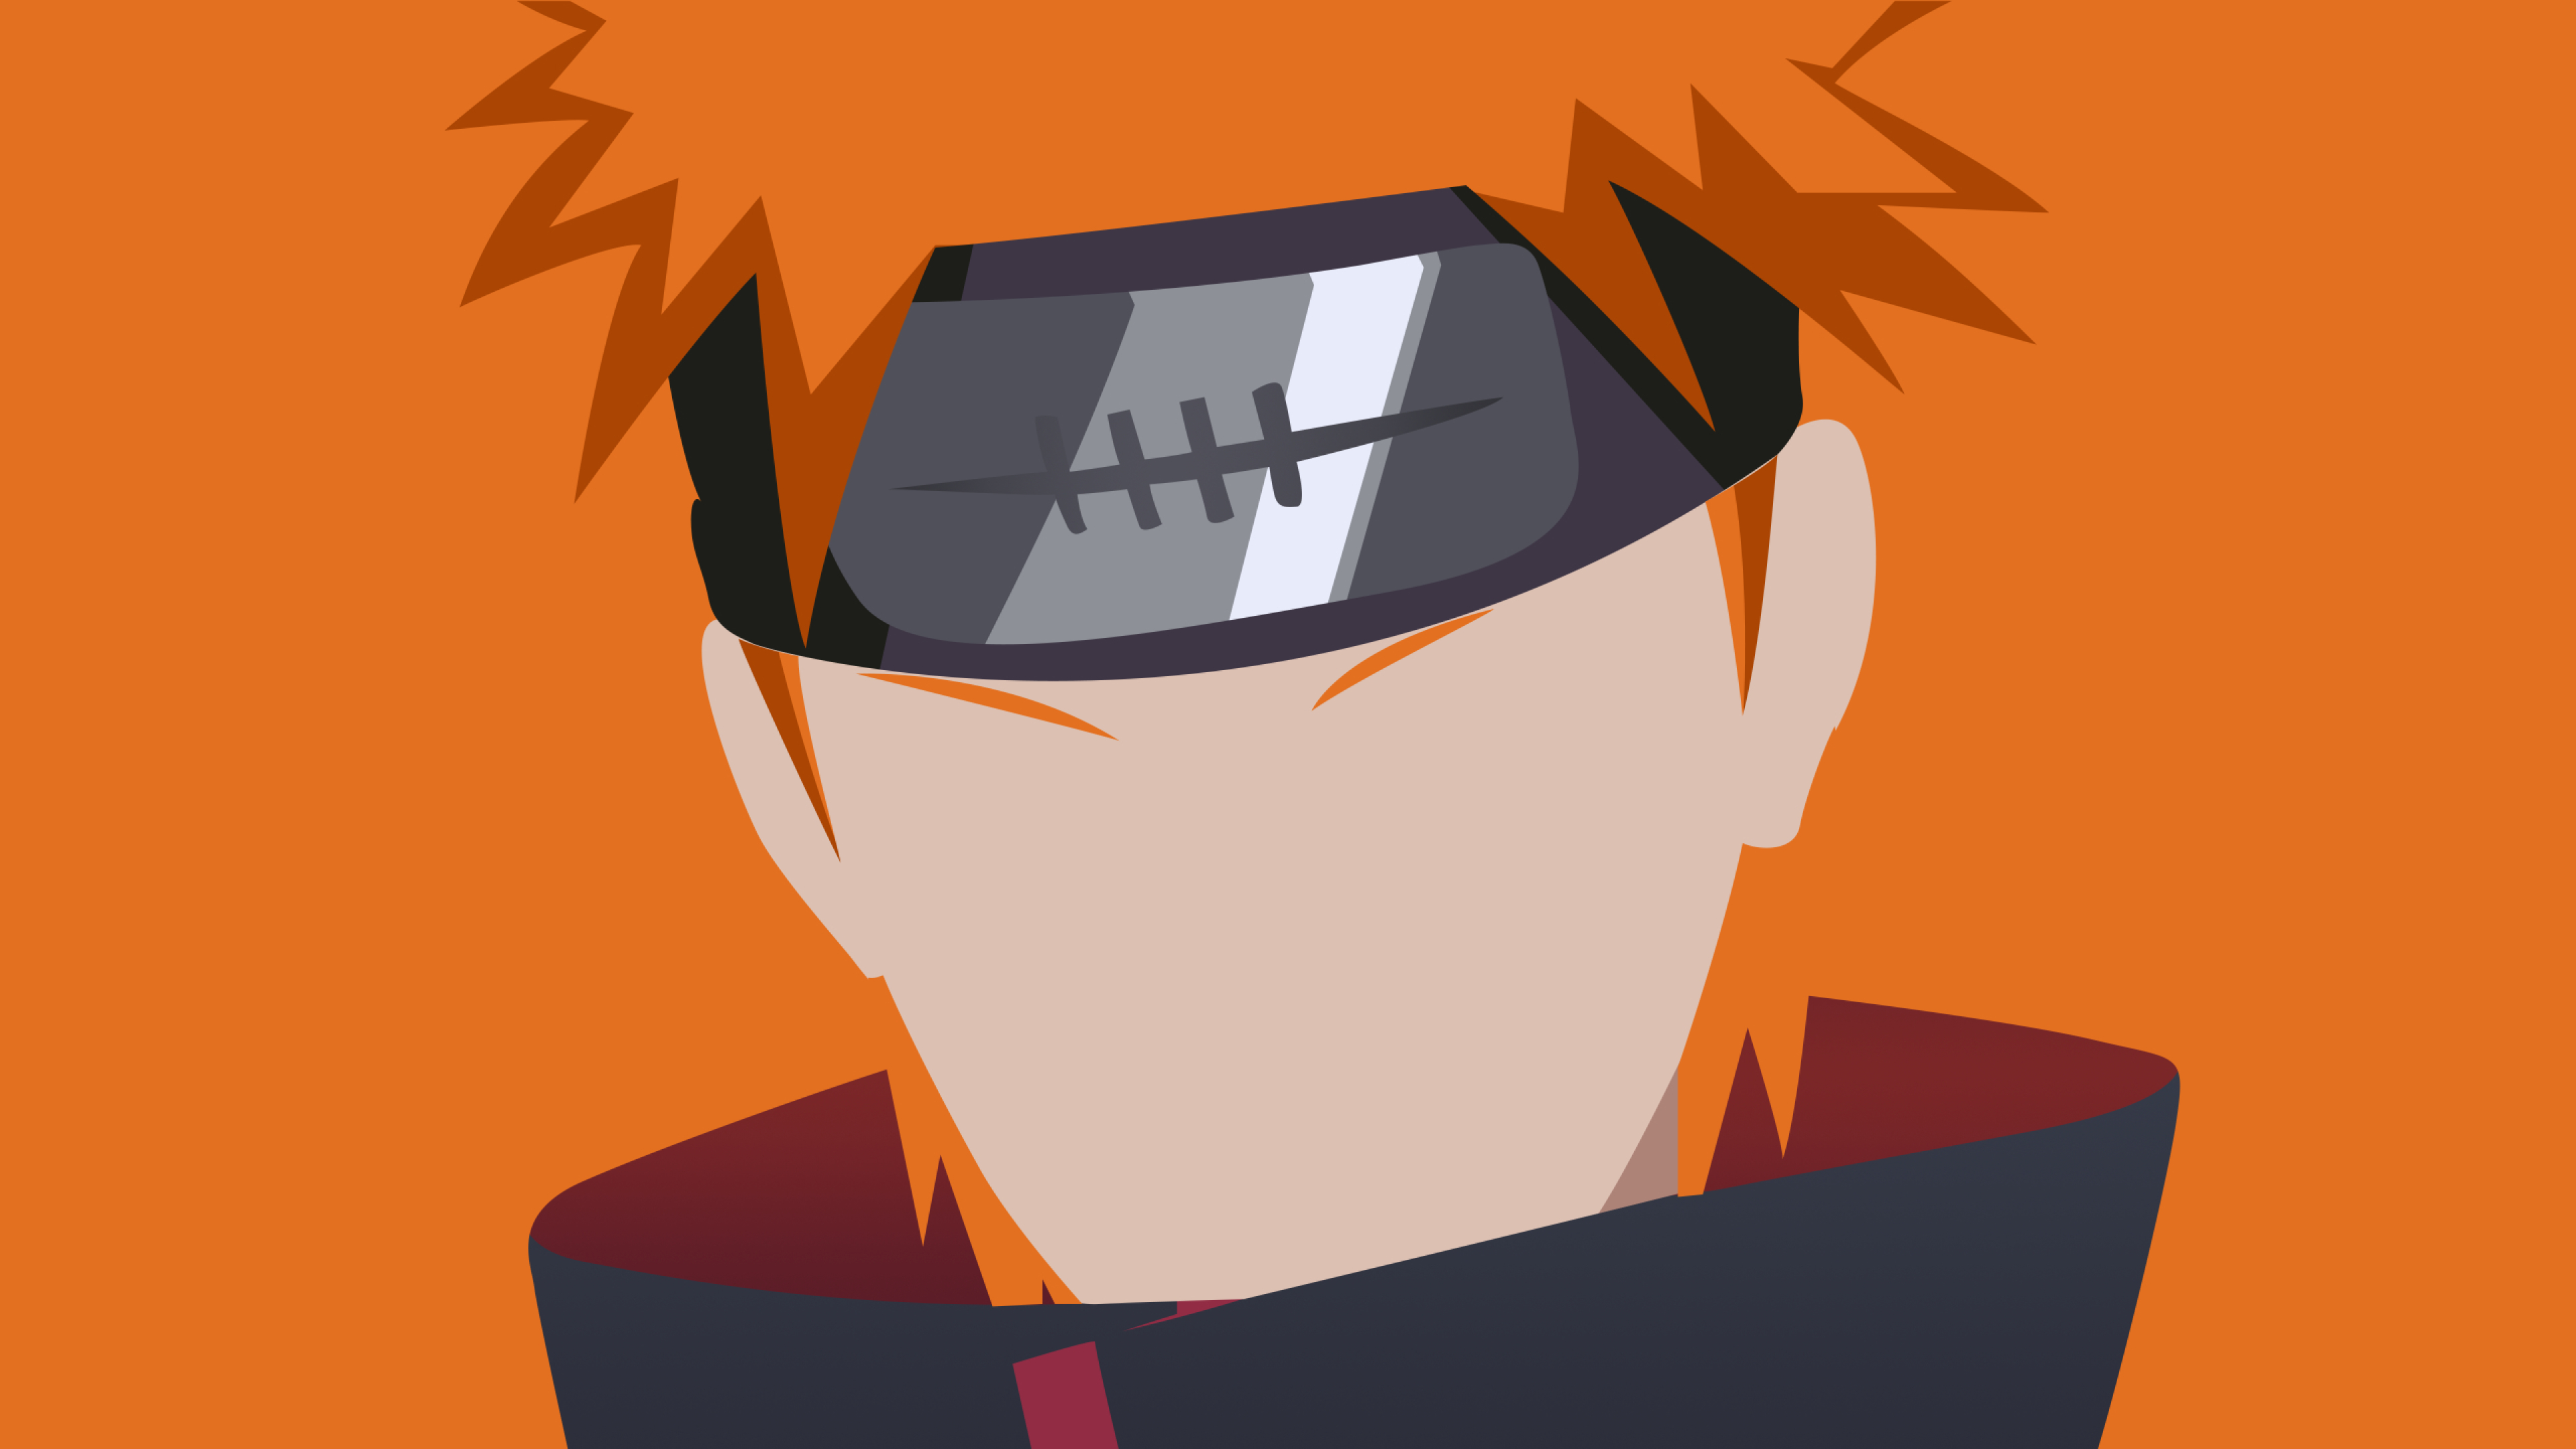 Wallpaper Pain Naruto Wallpaper Anime